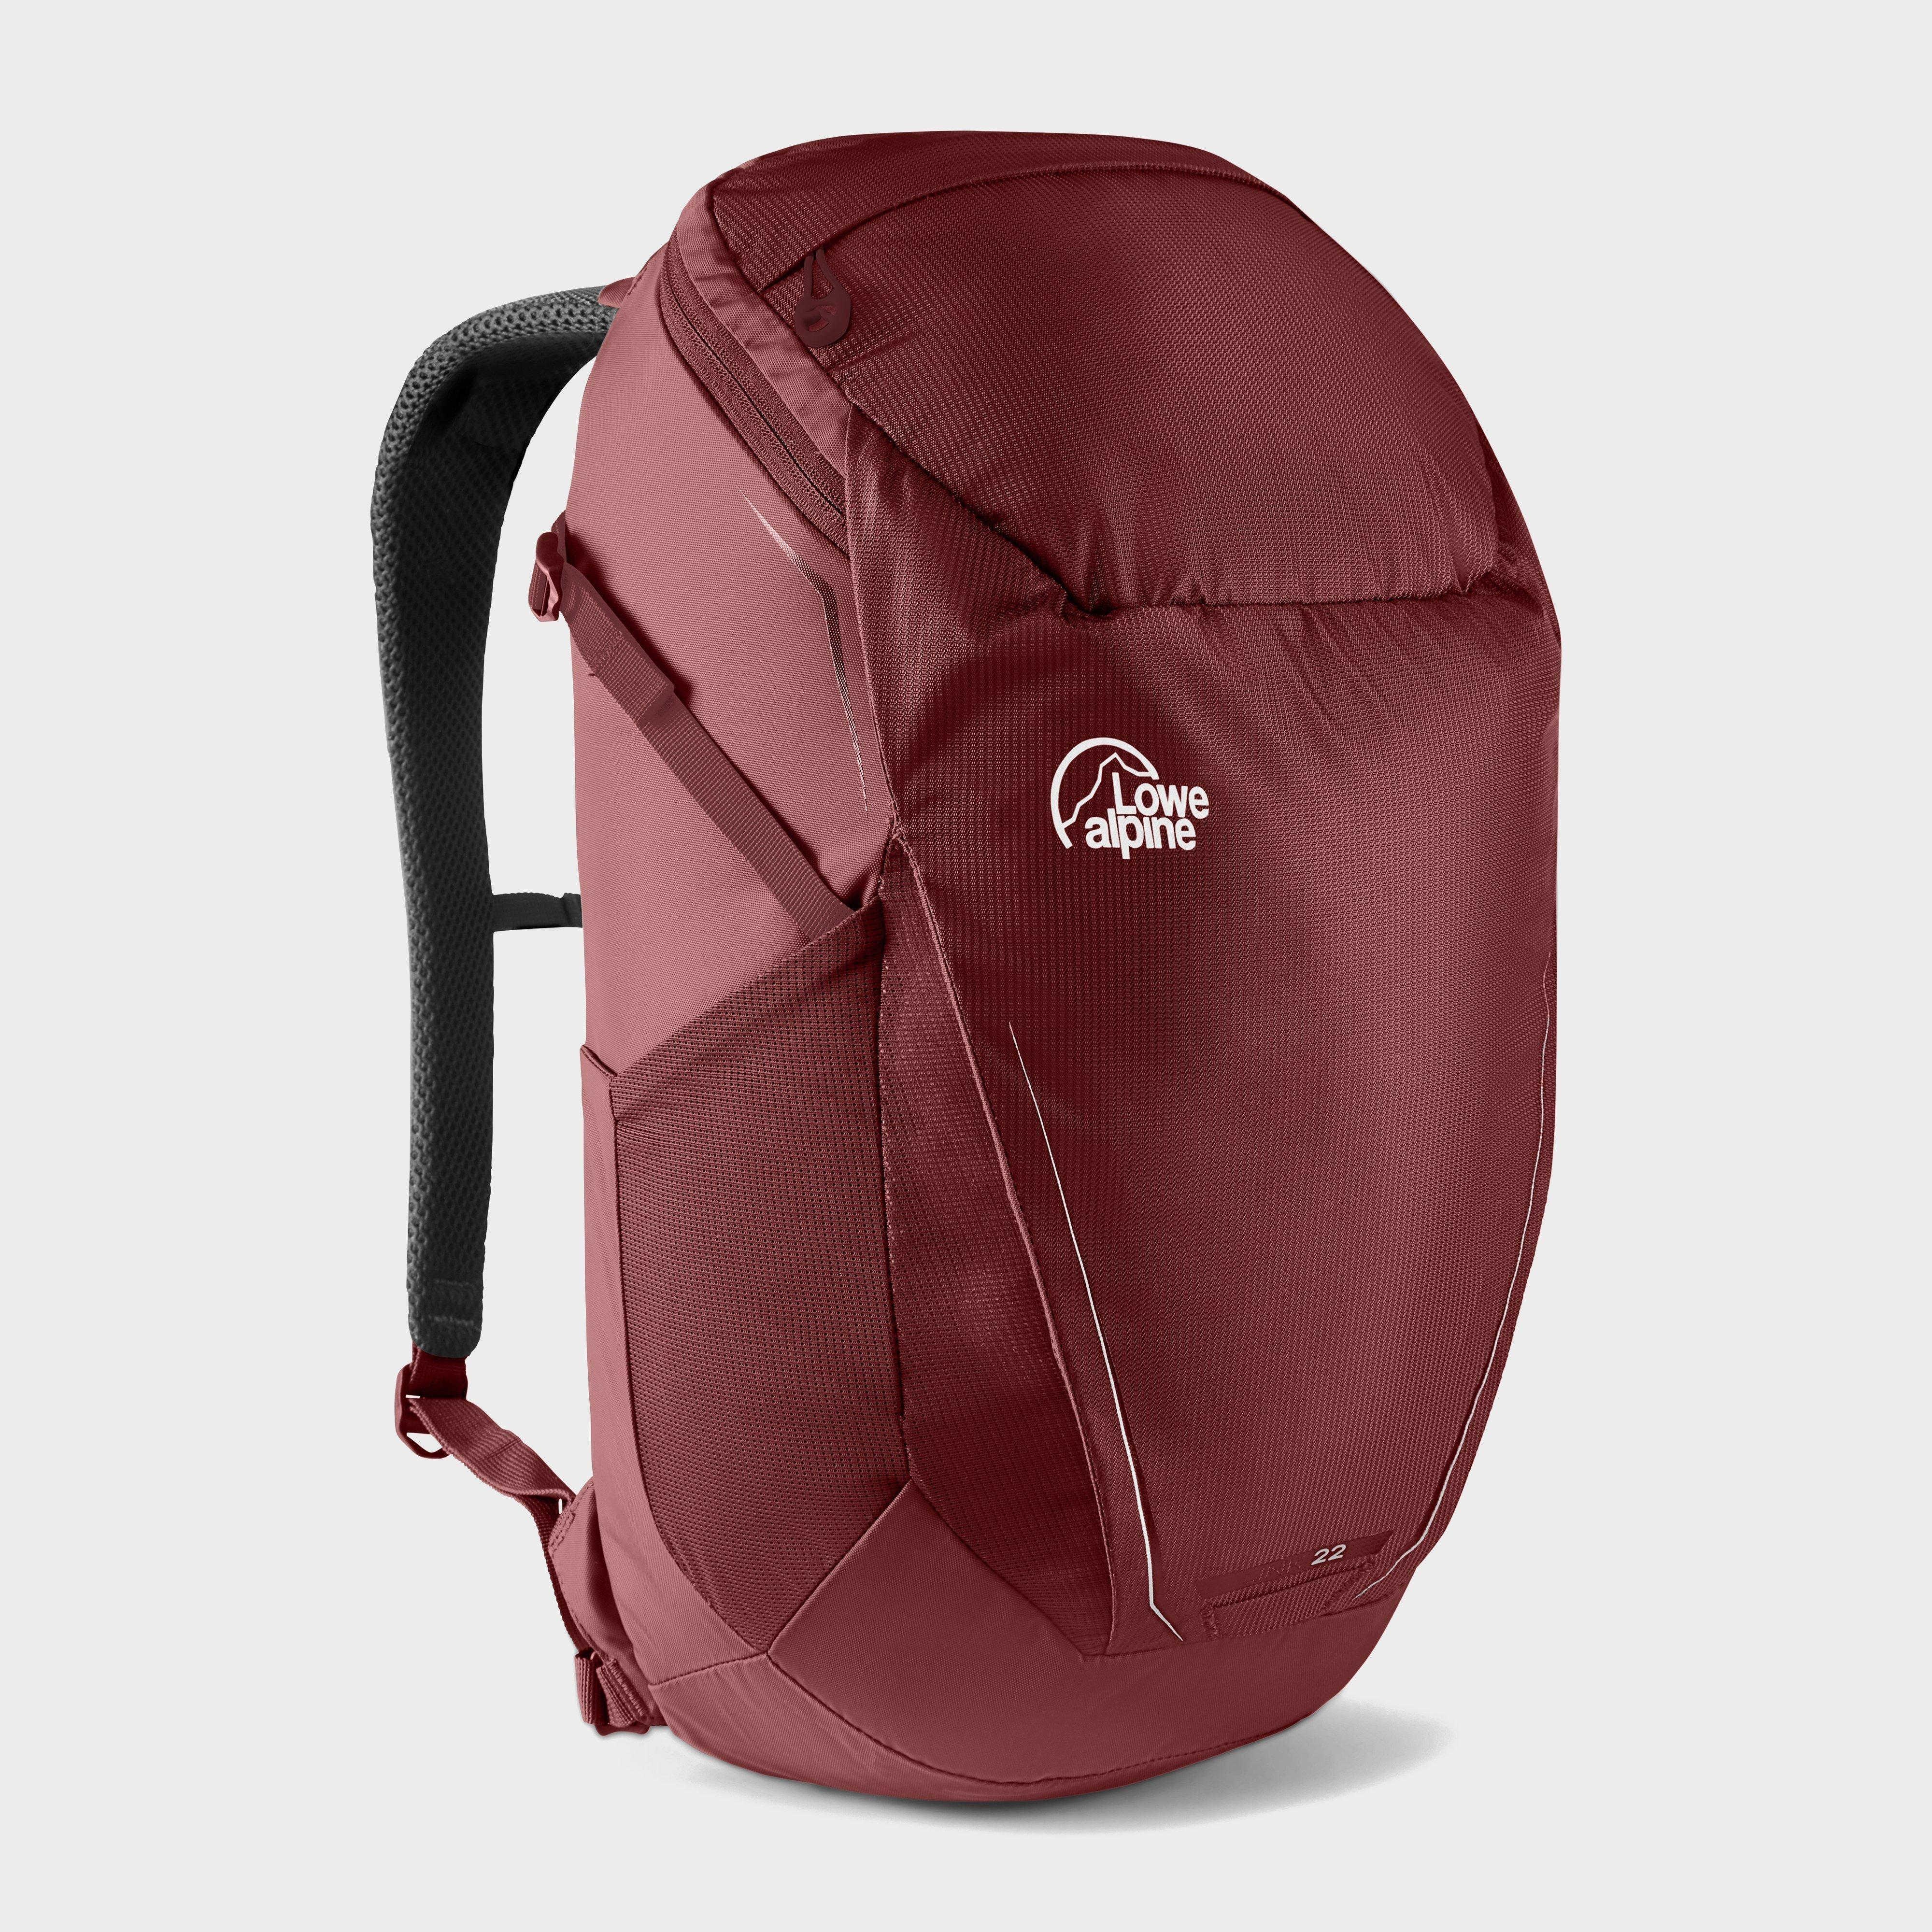 Lowe Alpine Link 22 Litre Daysack - Red/Red, Red